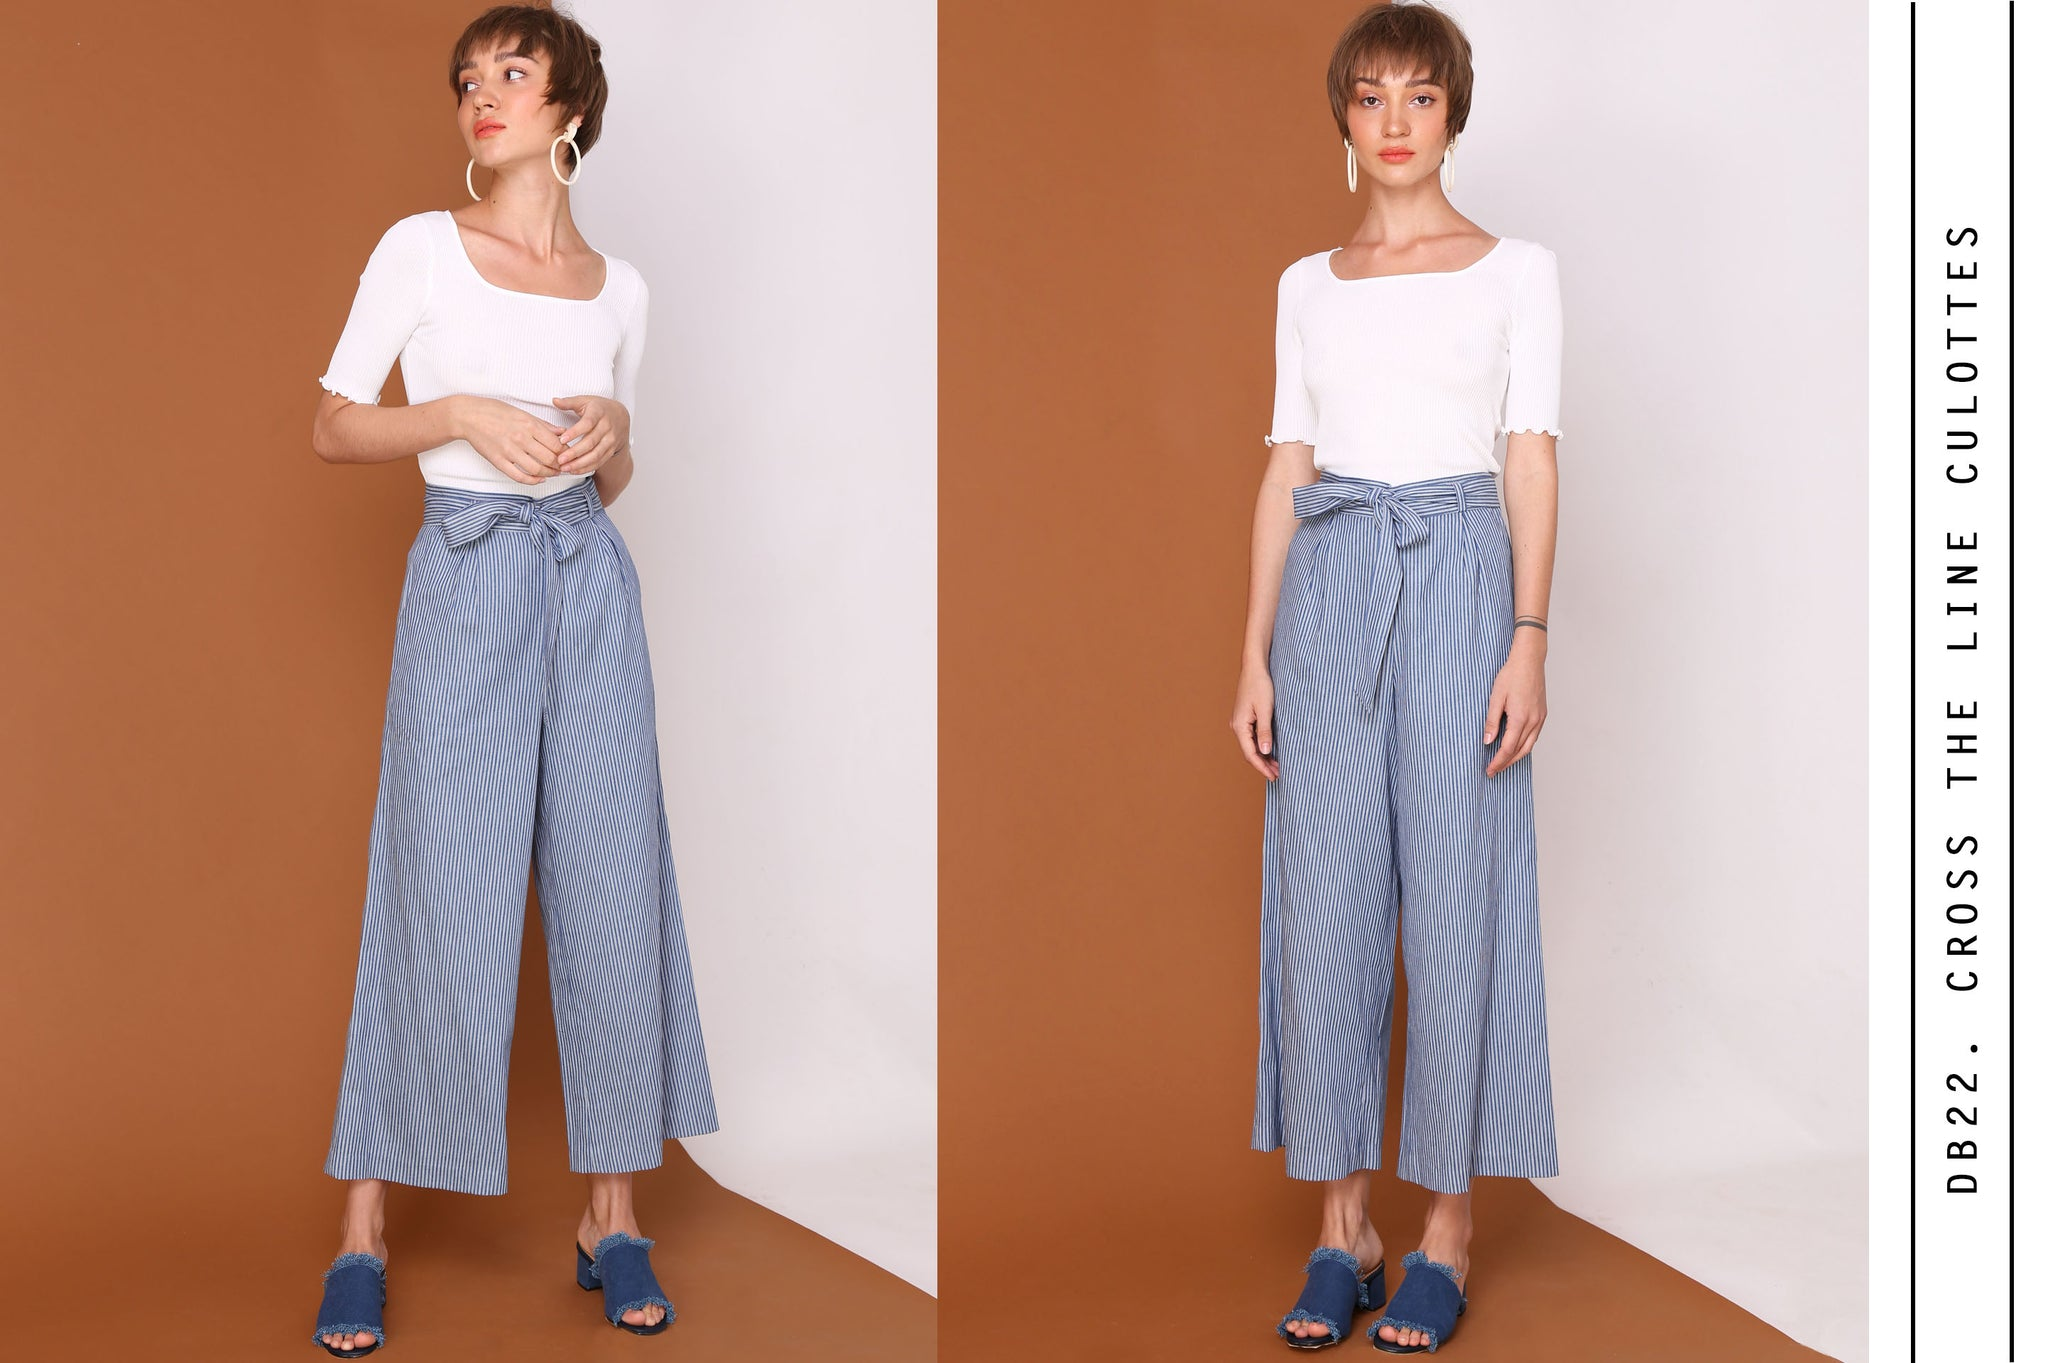 CROSS THE LINE Stripes Denim Blue Culottes Pants